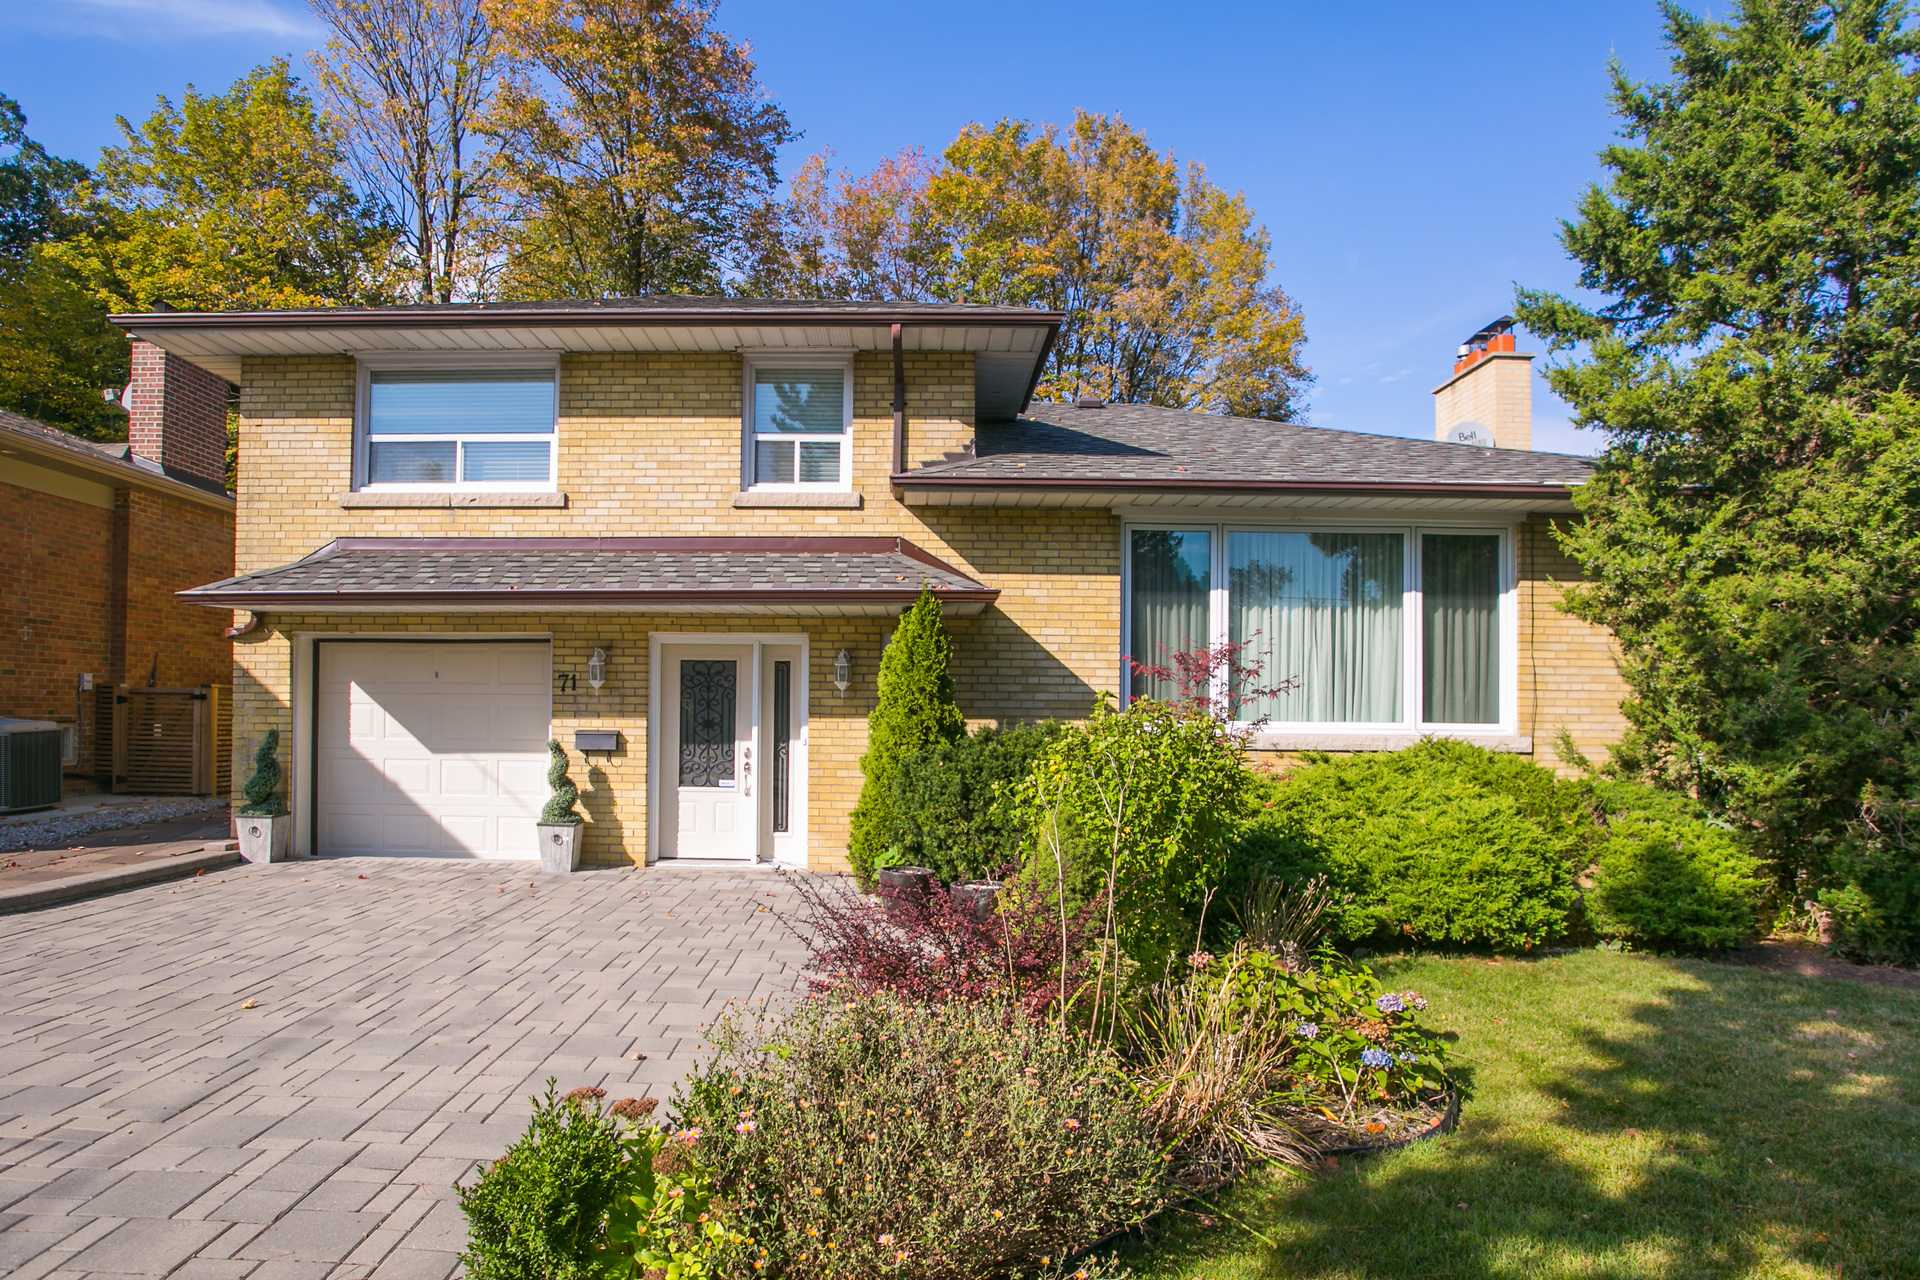 highres_001 at SALE # 466 - 71 Whittaker Crescent, Bayview Village, Toronto